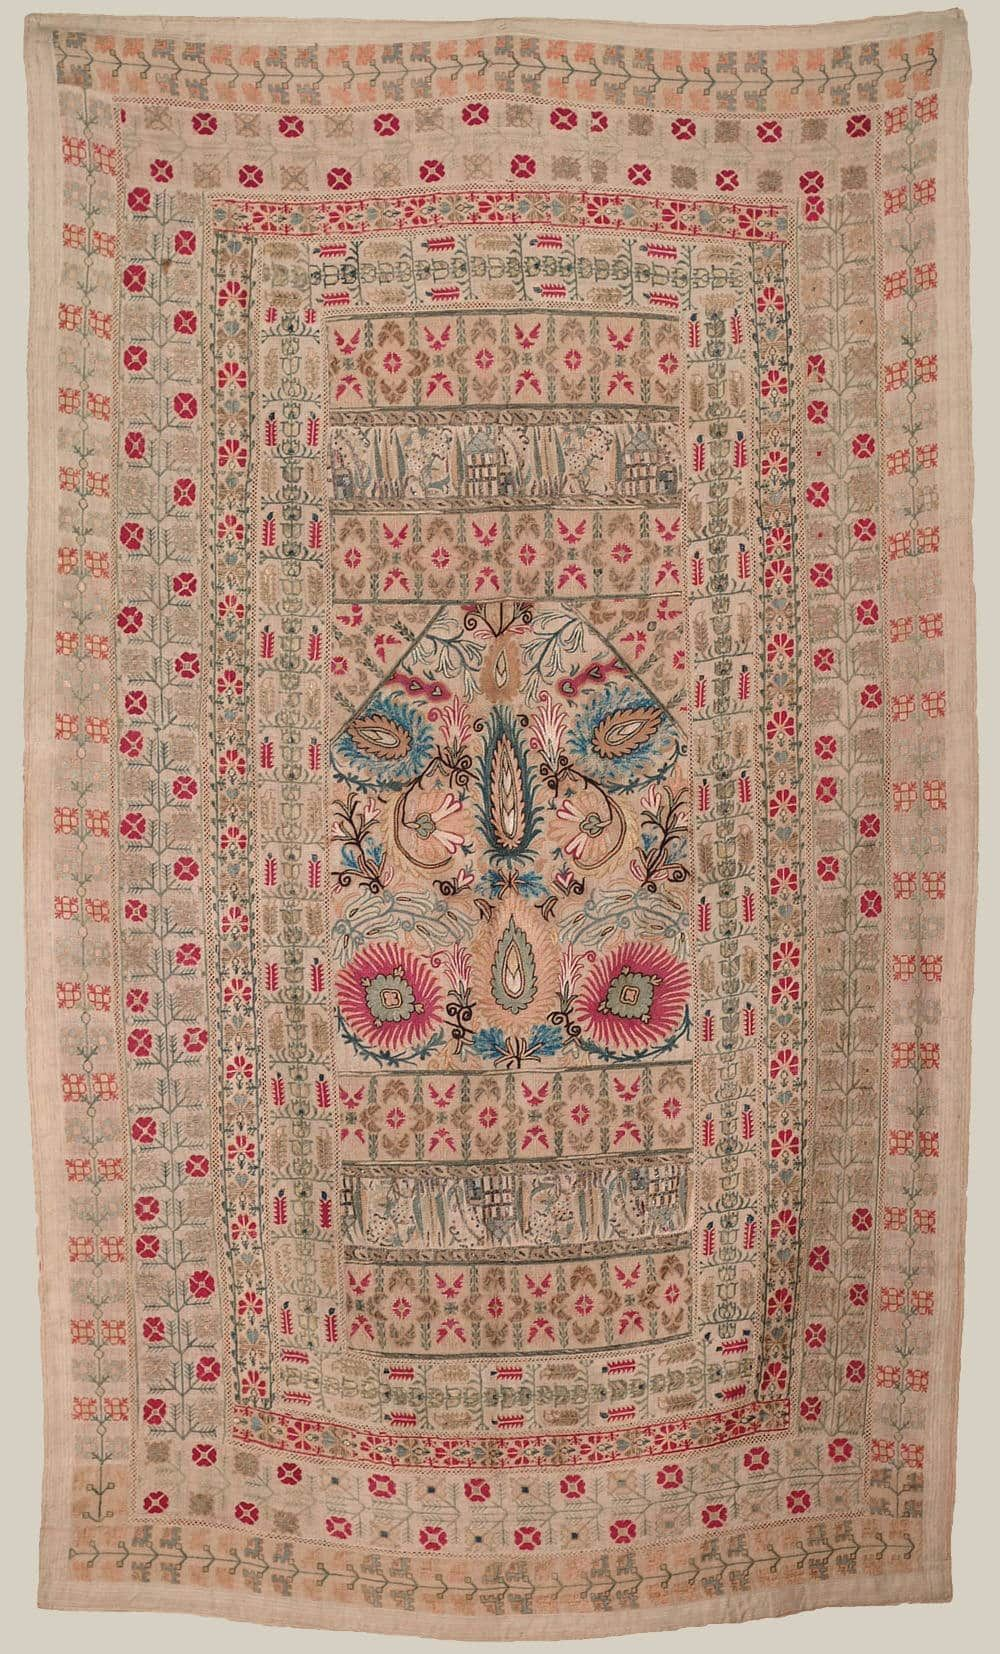 19th CENTURY GREEK EMBROIDERY FROM EPIRUS - Yorke Antique Textiles ...